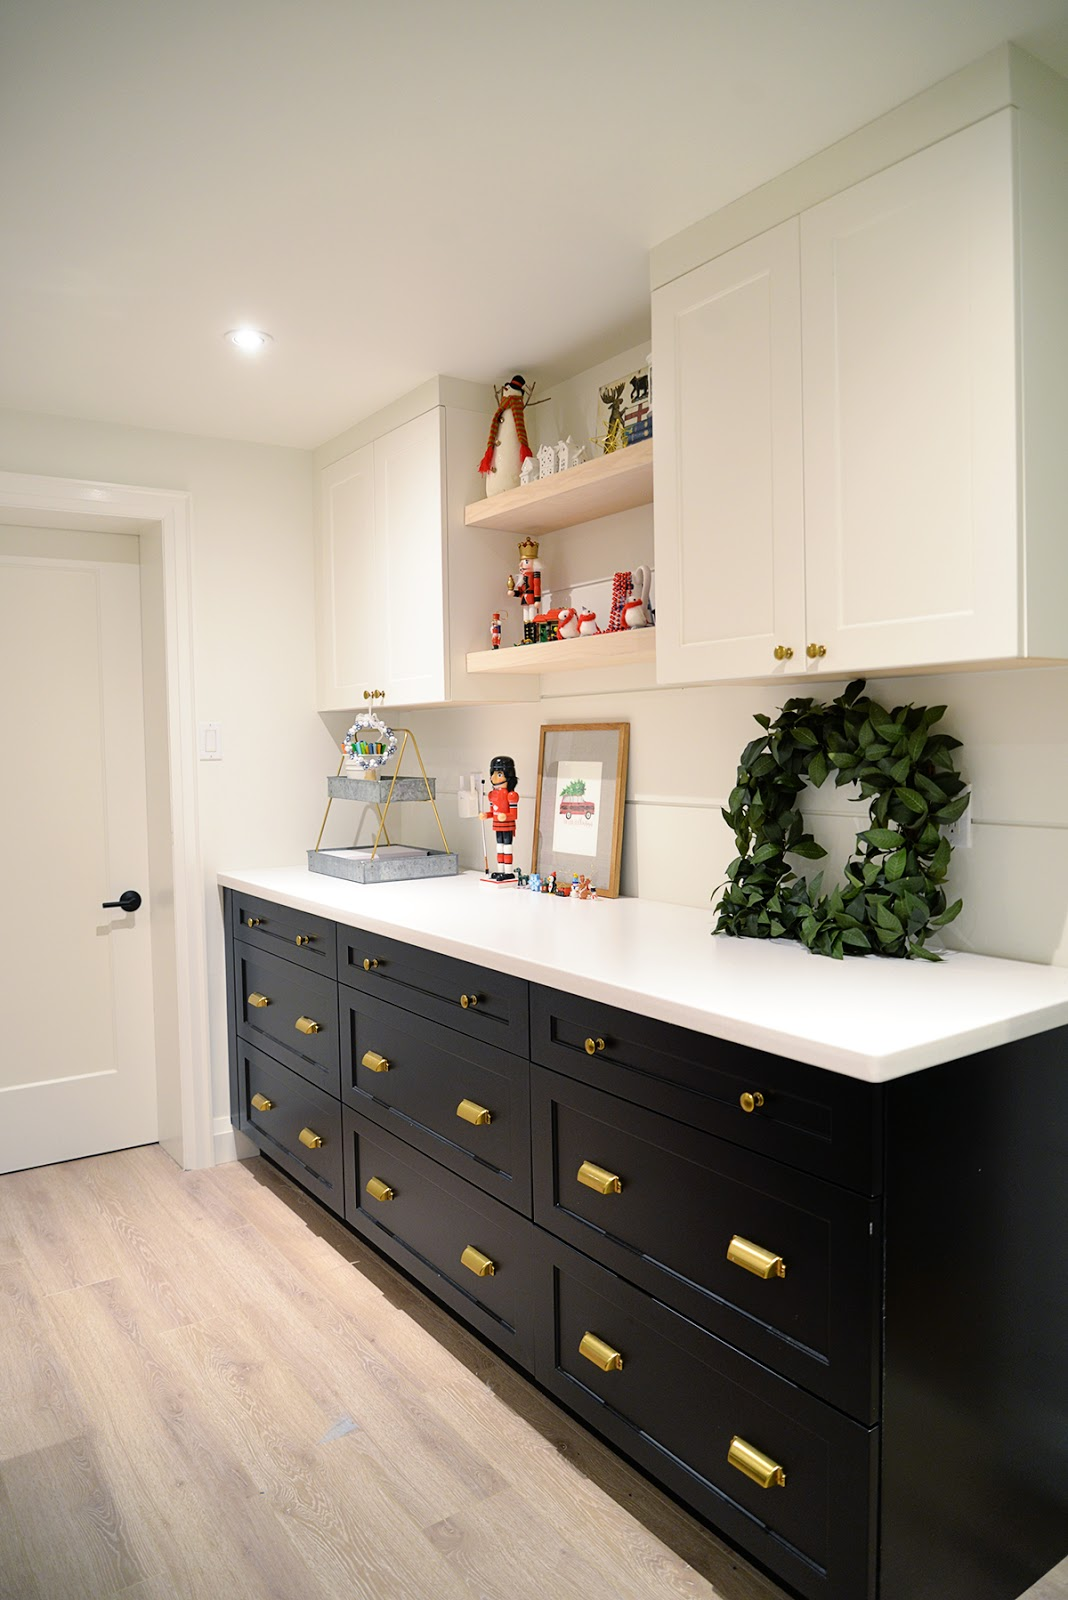 black and white cabinetry, a craft room decorated for Christmas